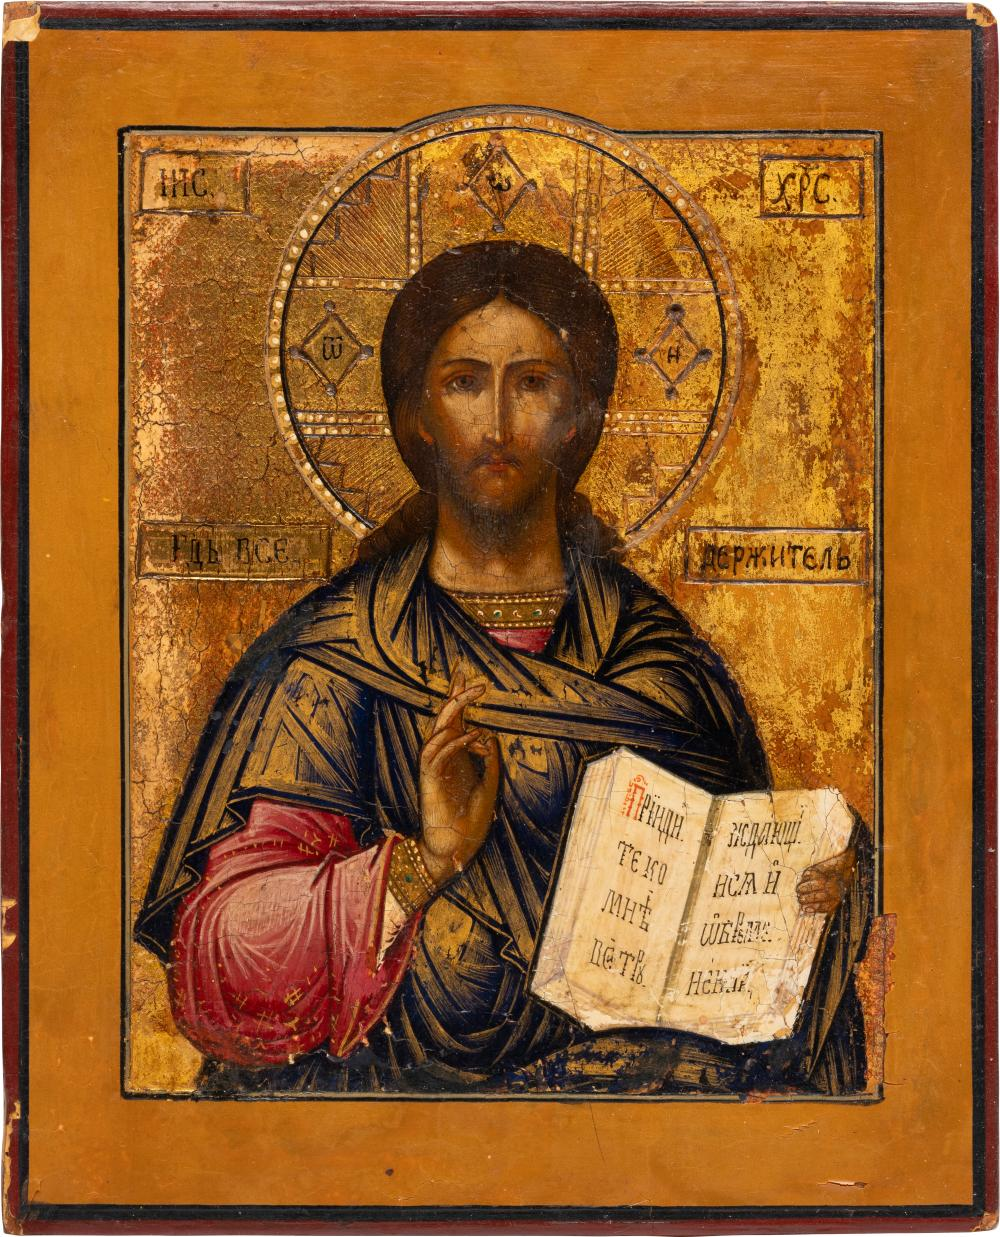 A SMALL ICON SHOWING CHRIST PANTOKRATOR